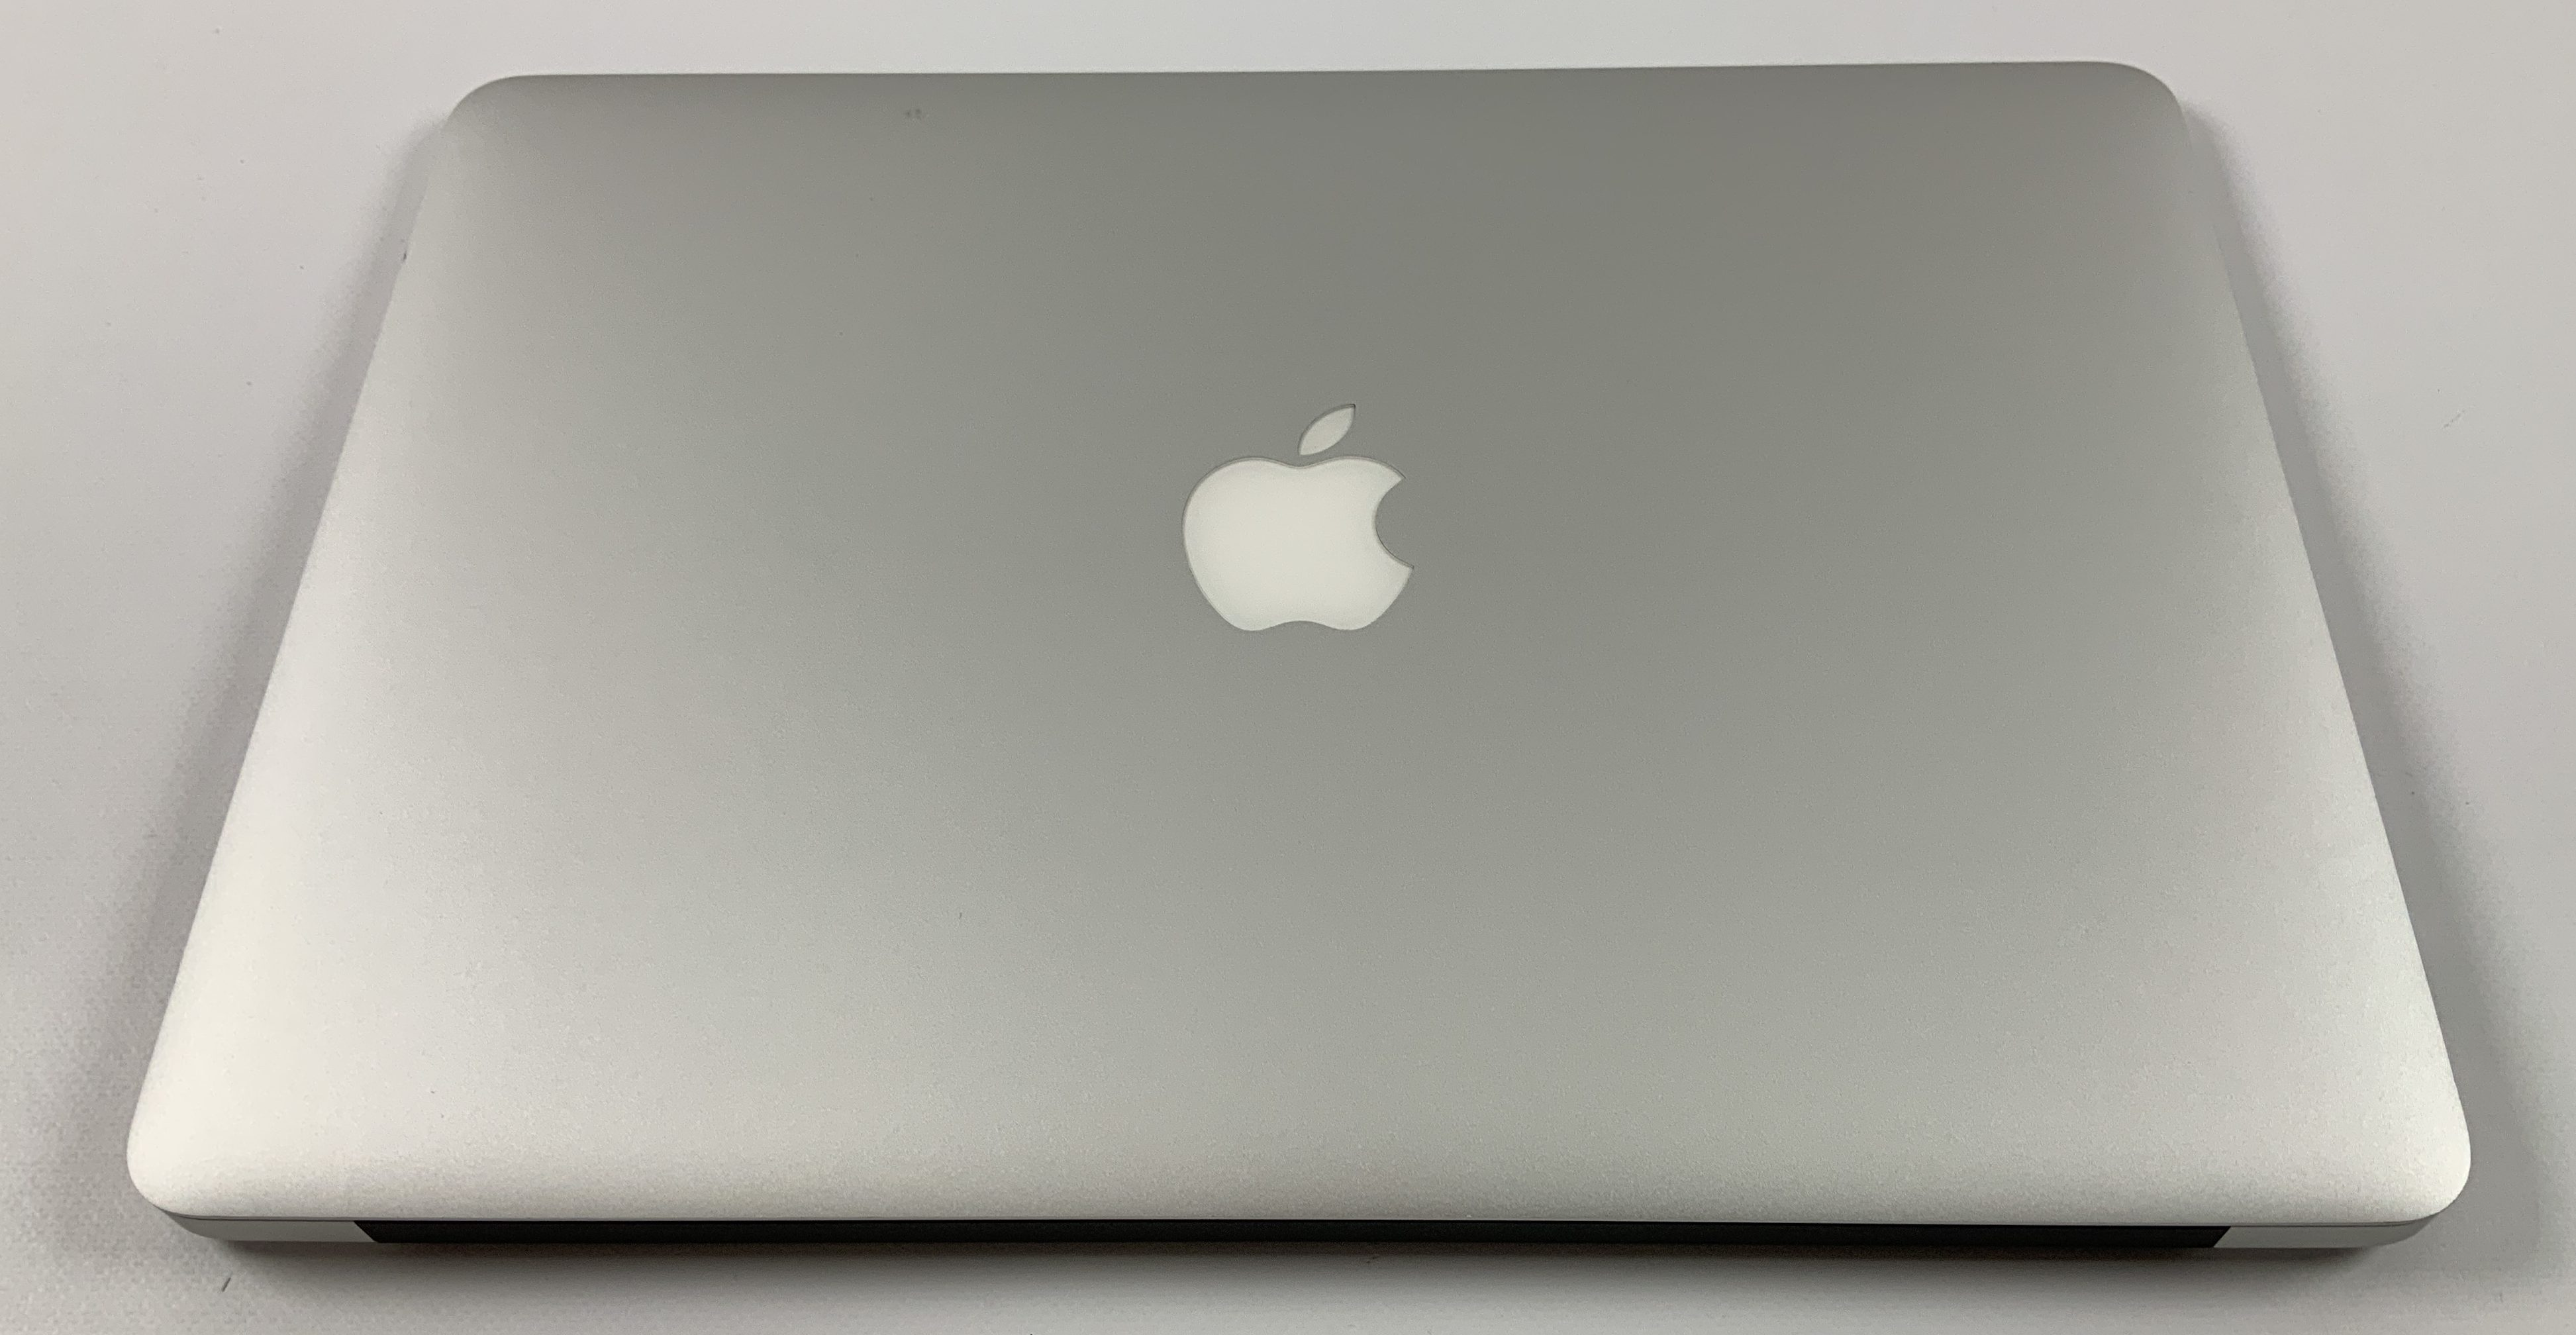 "MacBook Air 13"" Early 2015 (Intel Core i5 1.6 GHz 8 GB RAM 256 GB SSD), Intel Core i5 1.6 GHz, 8 GB RAM, 256 GB SSD, Kuva 4"